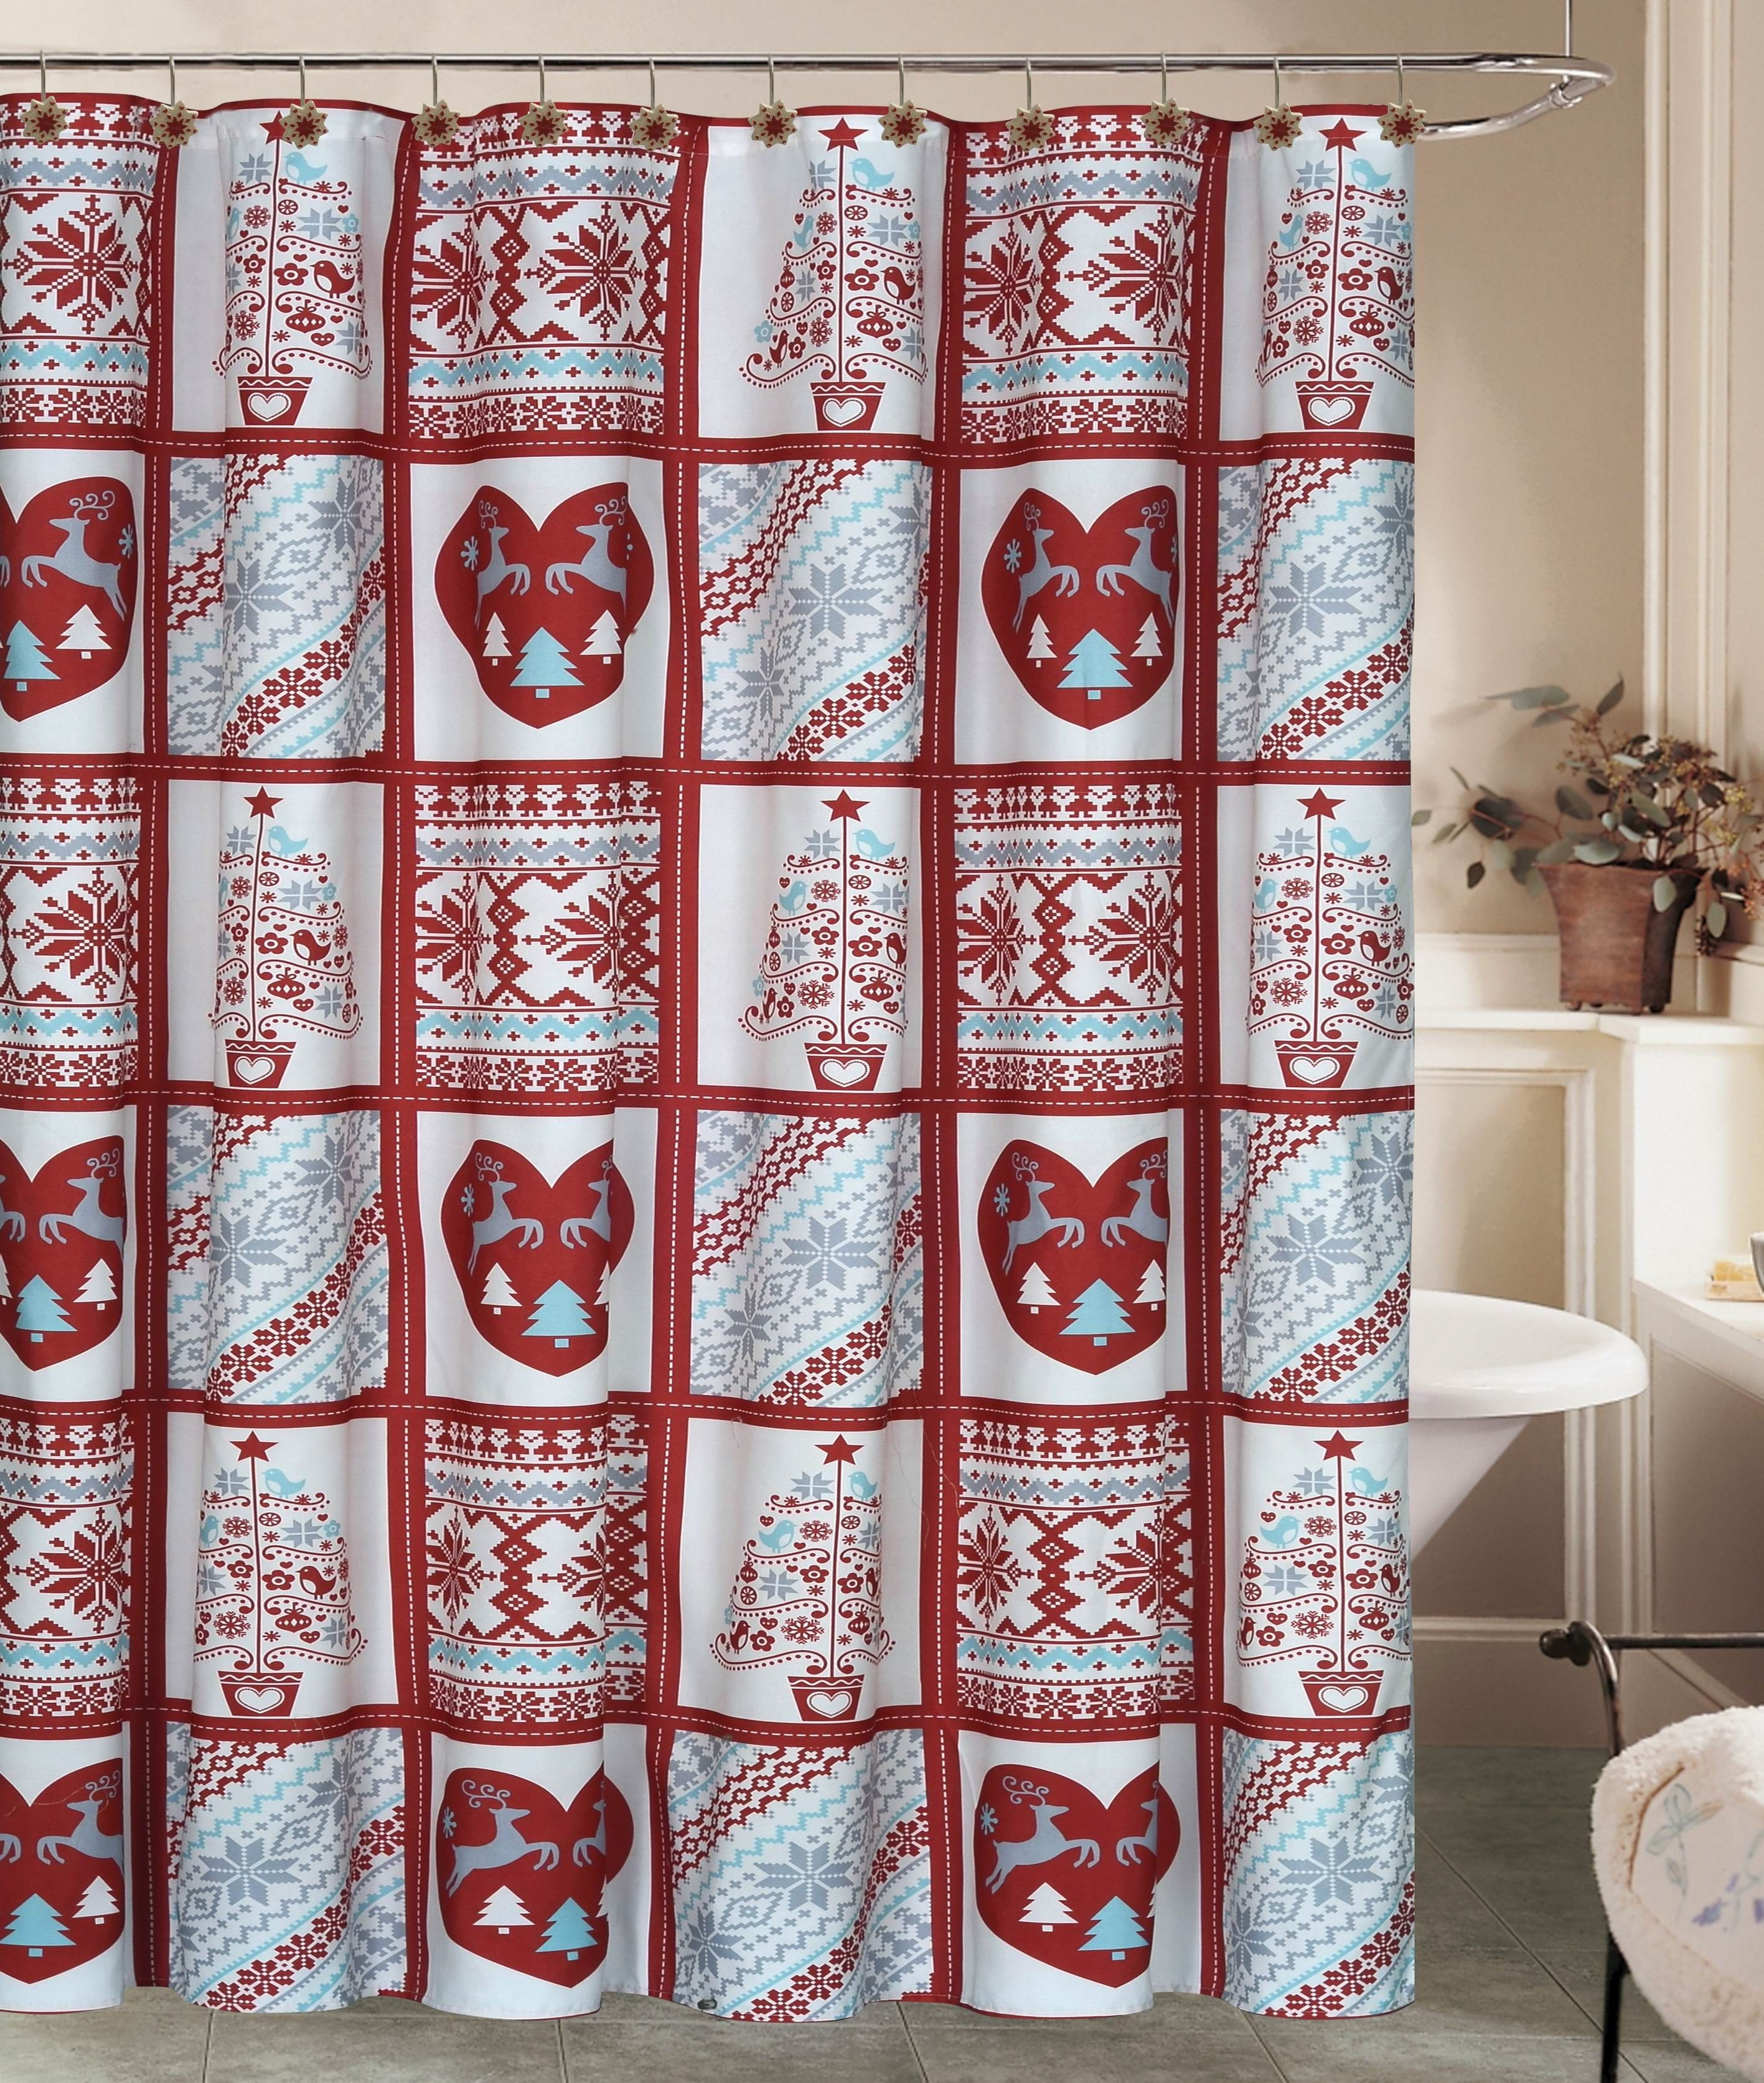 Beatrice Christmas Holiday Fair Isle Snowflake Shower Curtain With 12 Resin Hook Rings Bathroom Set Holiday Shower Curtains Snowman Shower Curtain Curtains